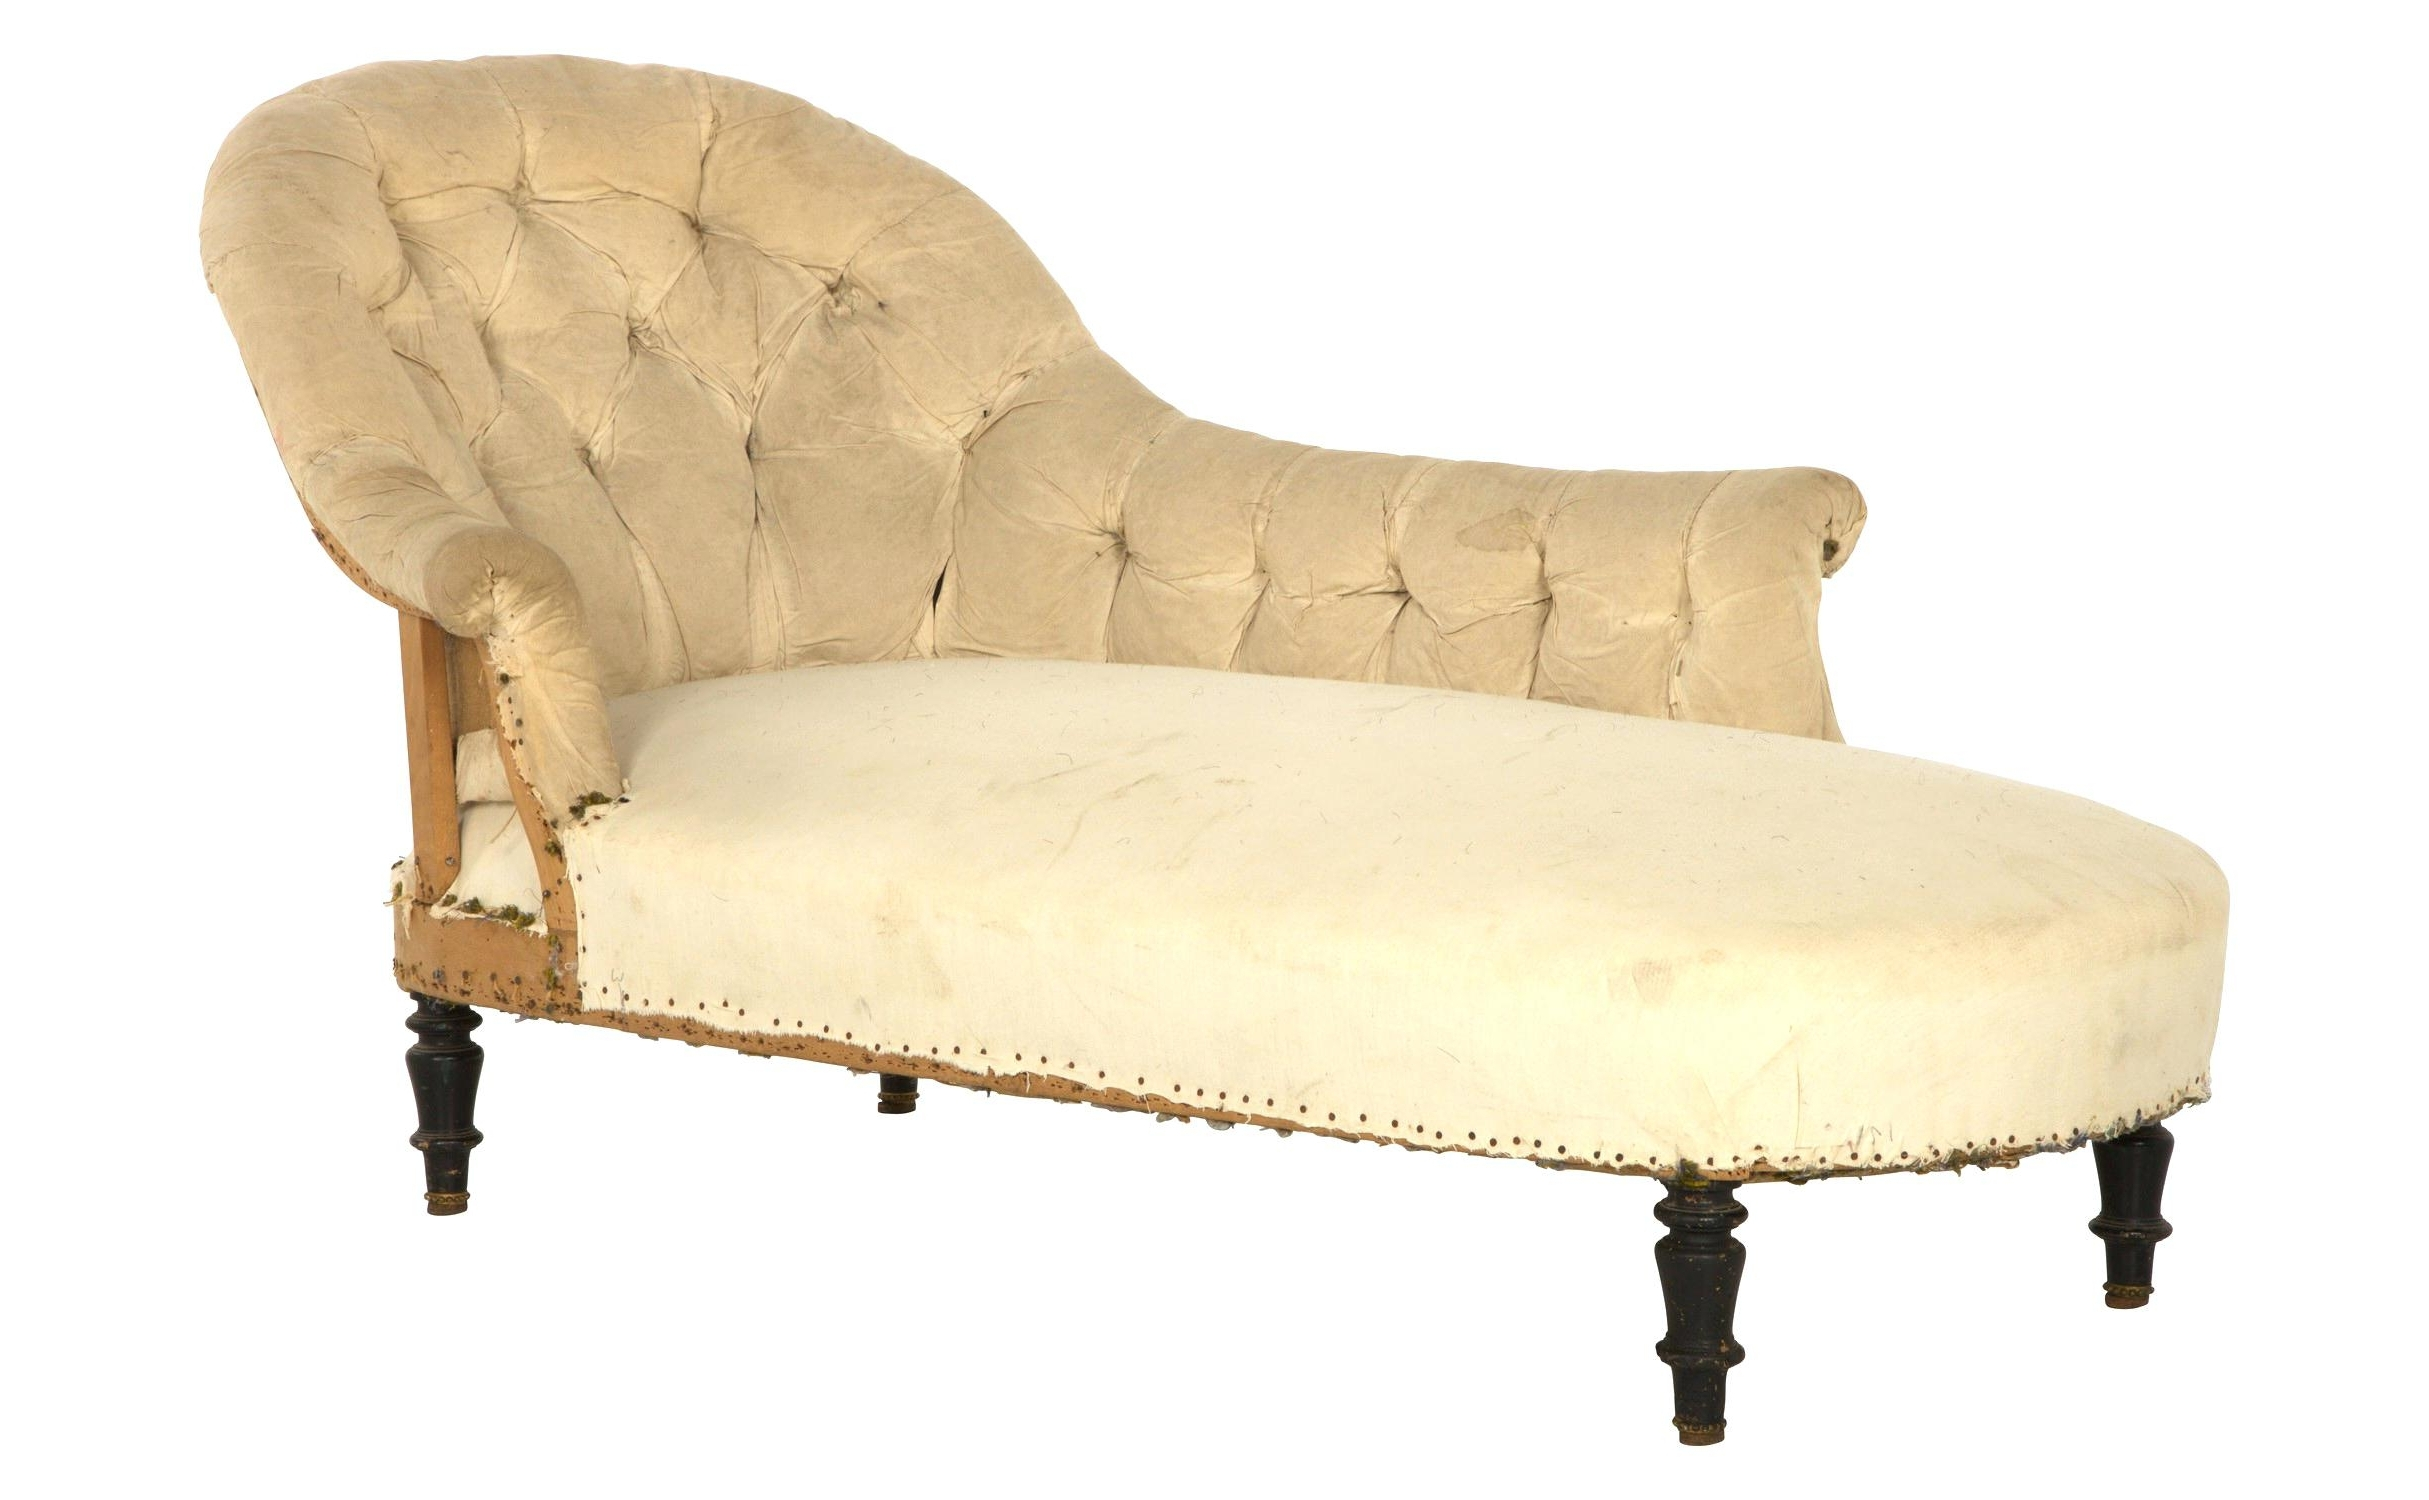 Vintage Chaise Lounge Chairs • Lounge Chairs Ideas throughout Current Vintage Chaise Lounge Chairs